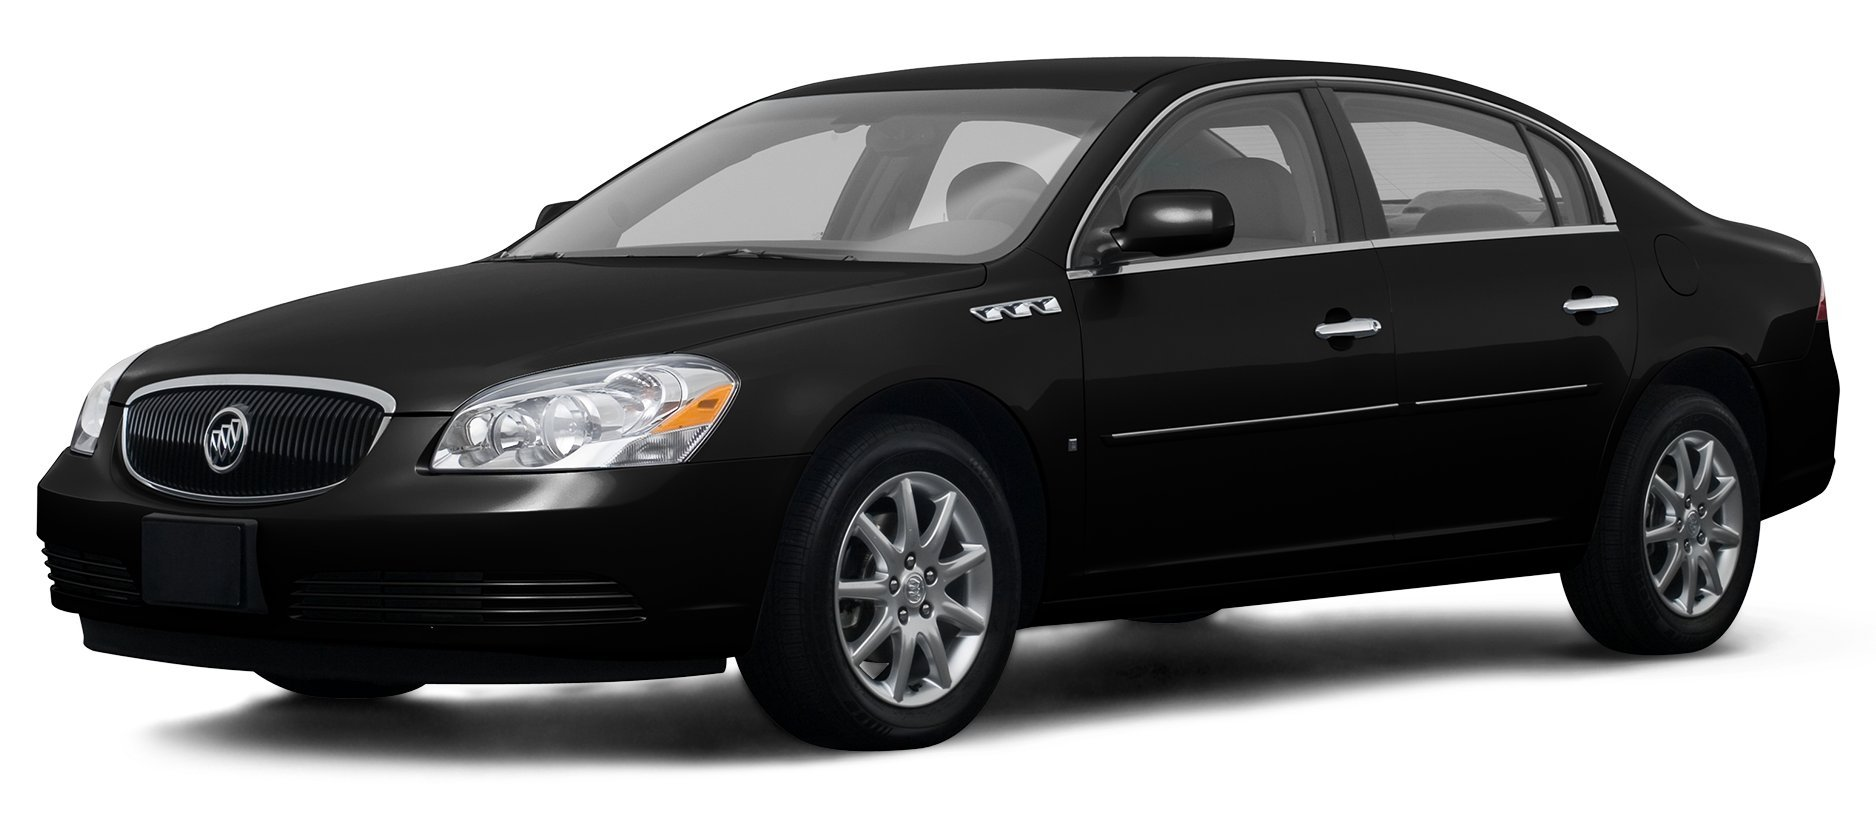 2008 Buick Lucerne CX, 4-Door Sedan V6 ...